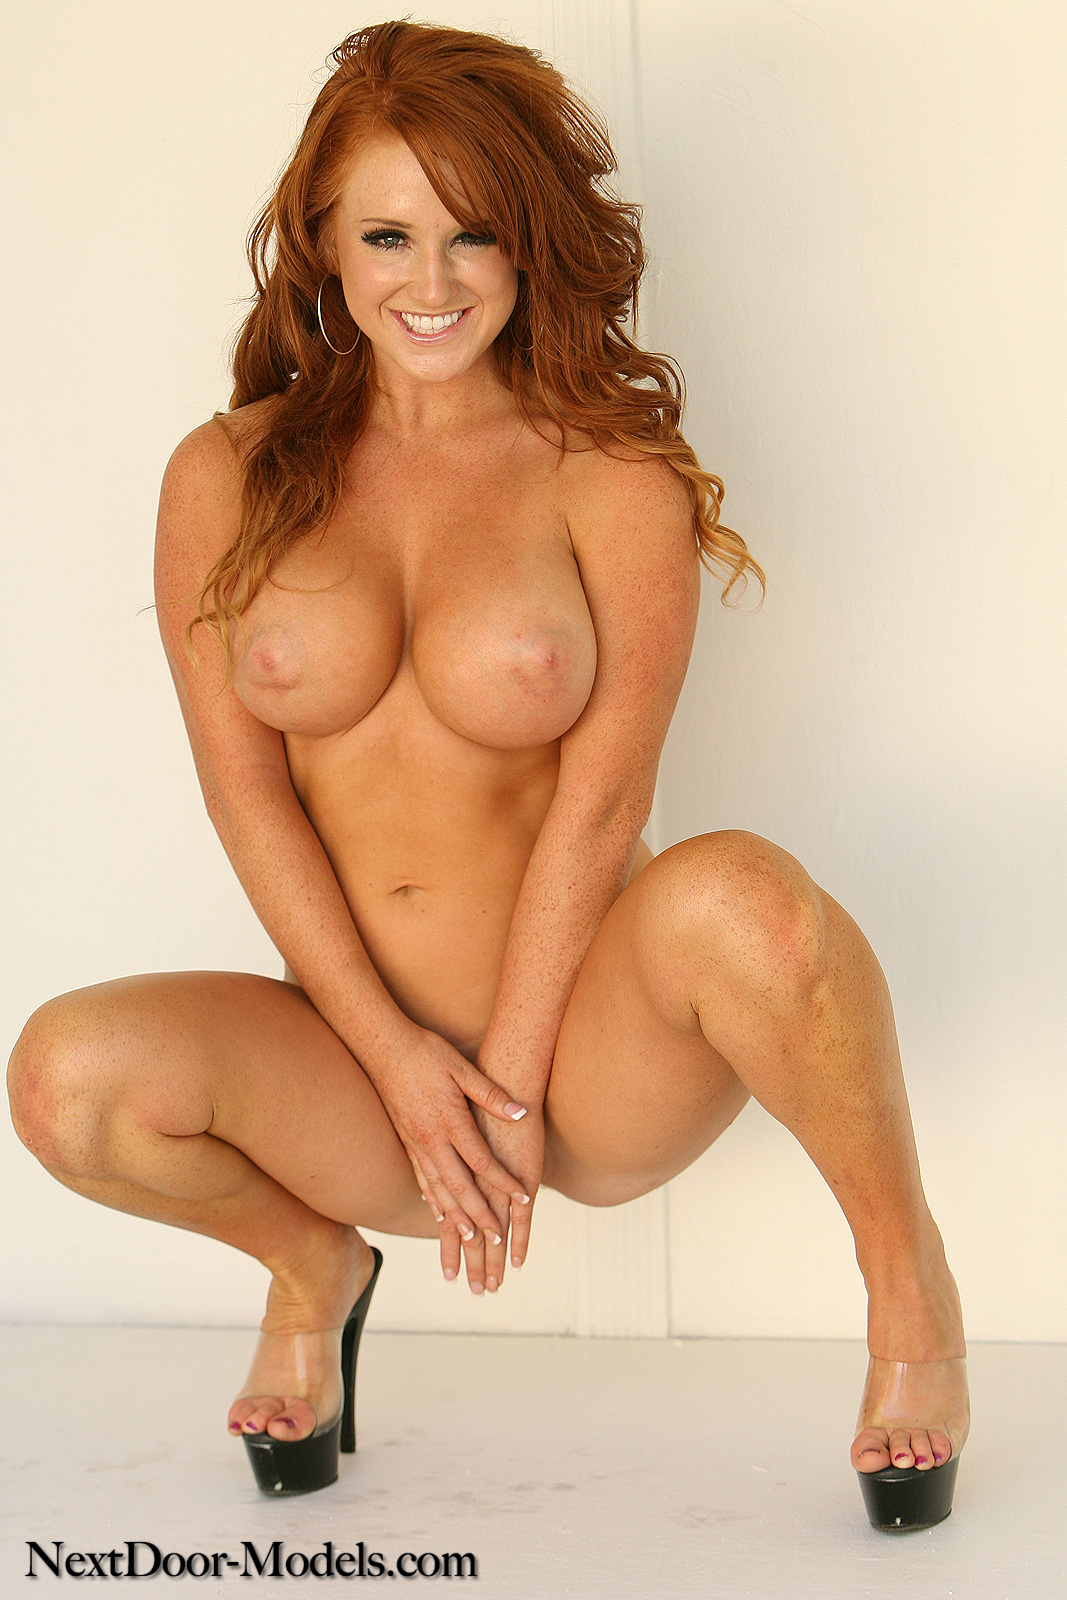 Red head girls hot